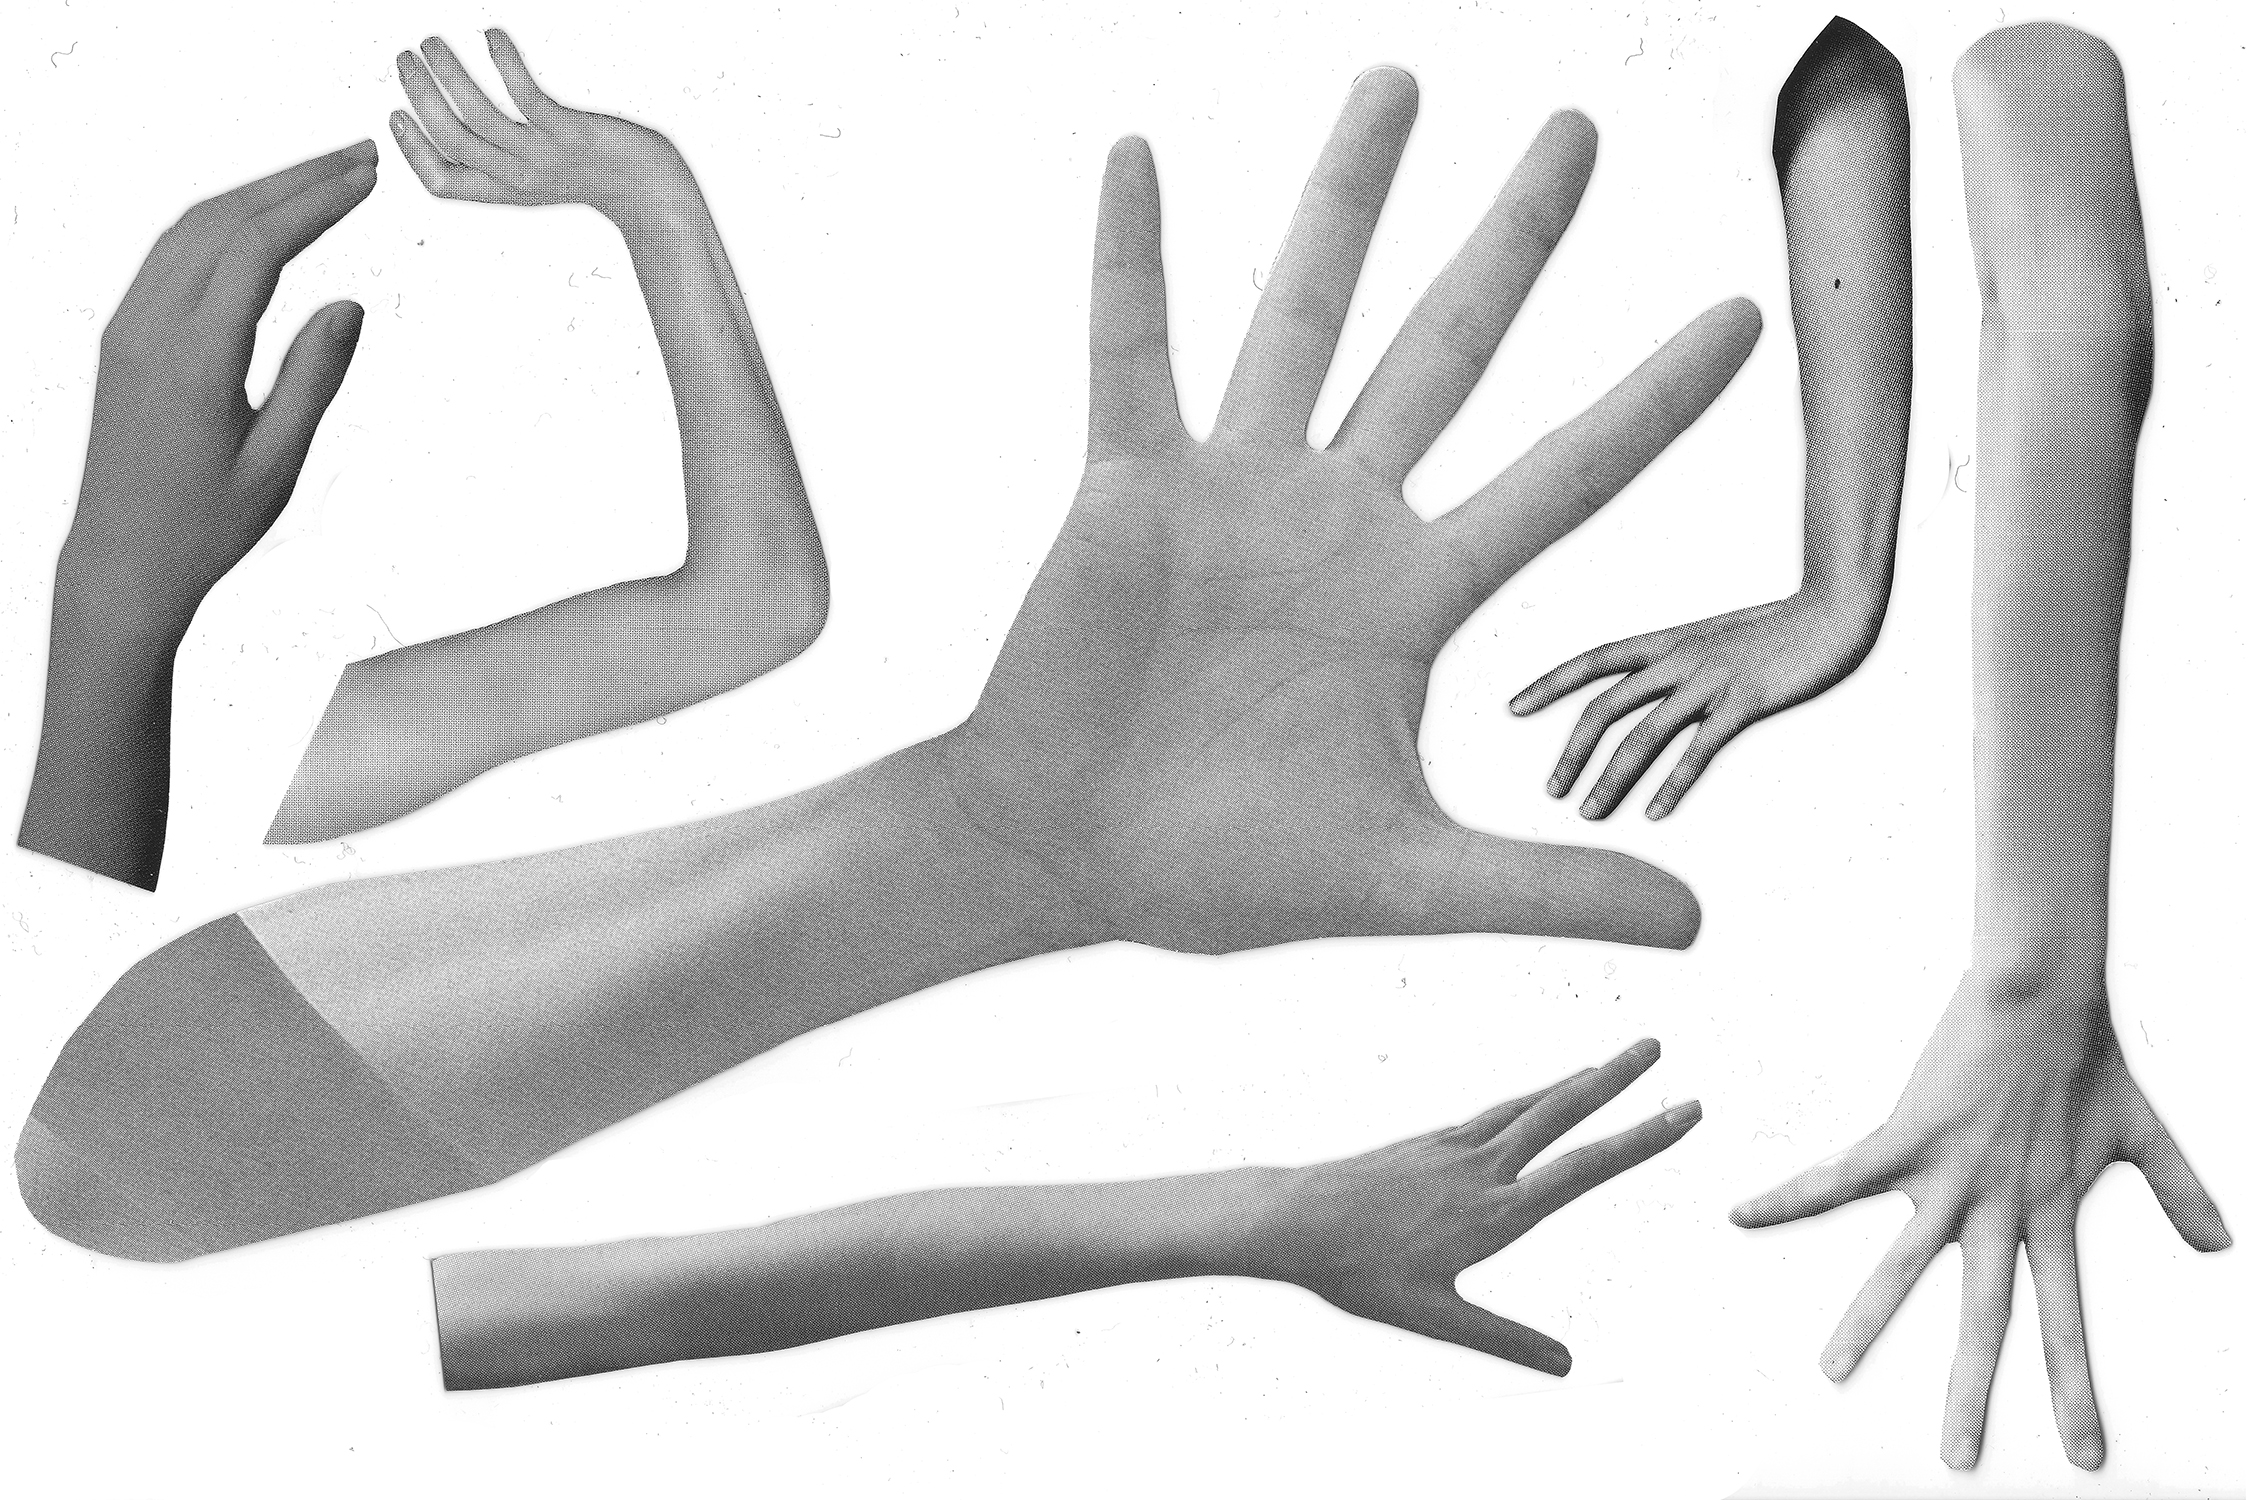 Hands_Piessis_BW_H.jpg